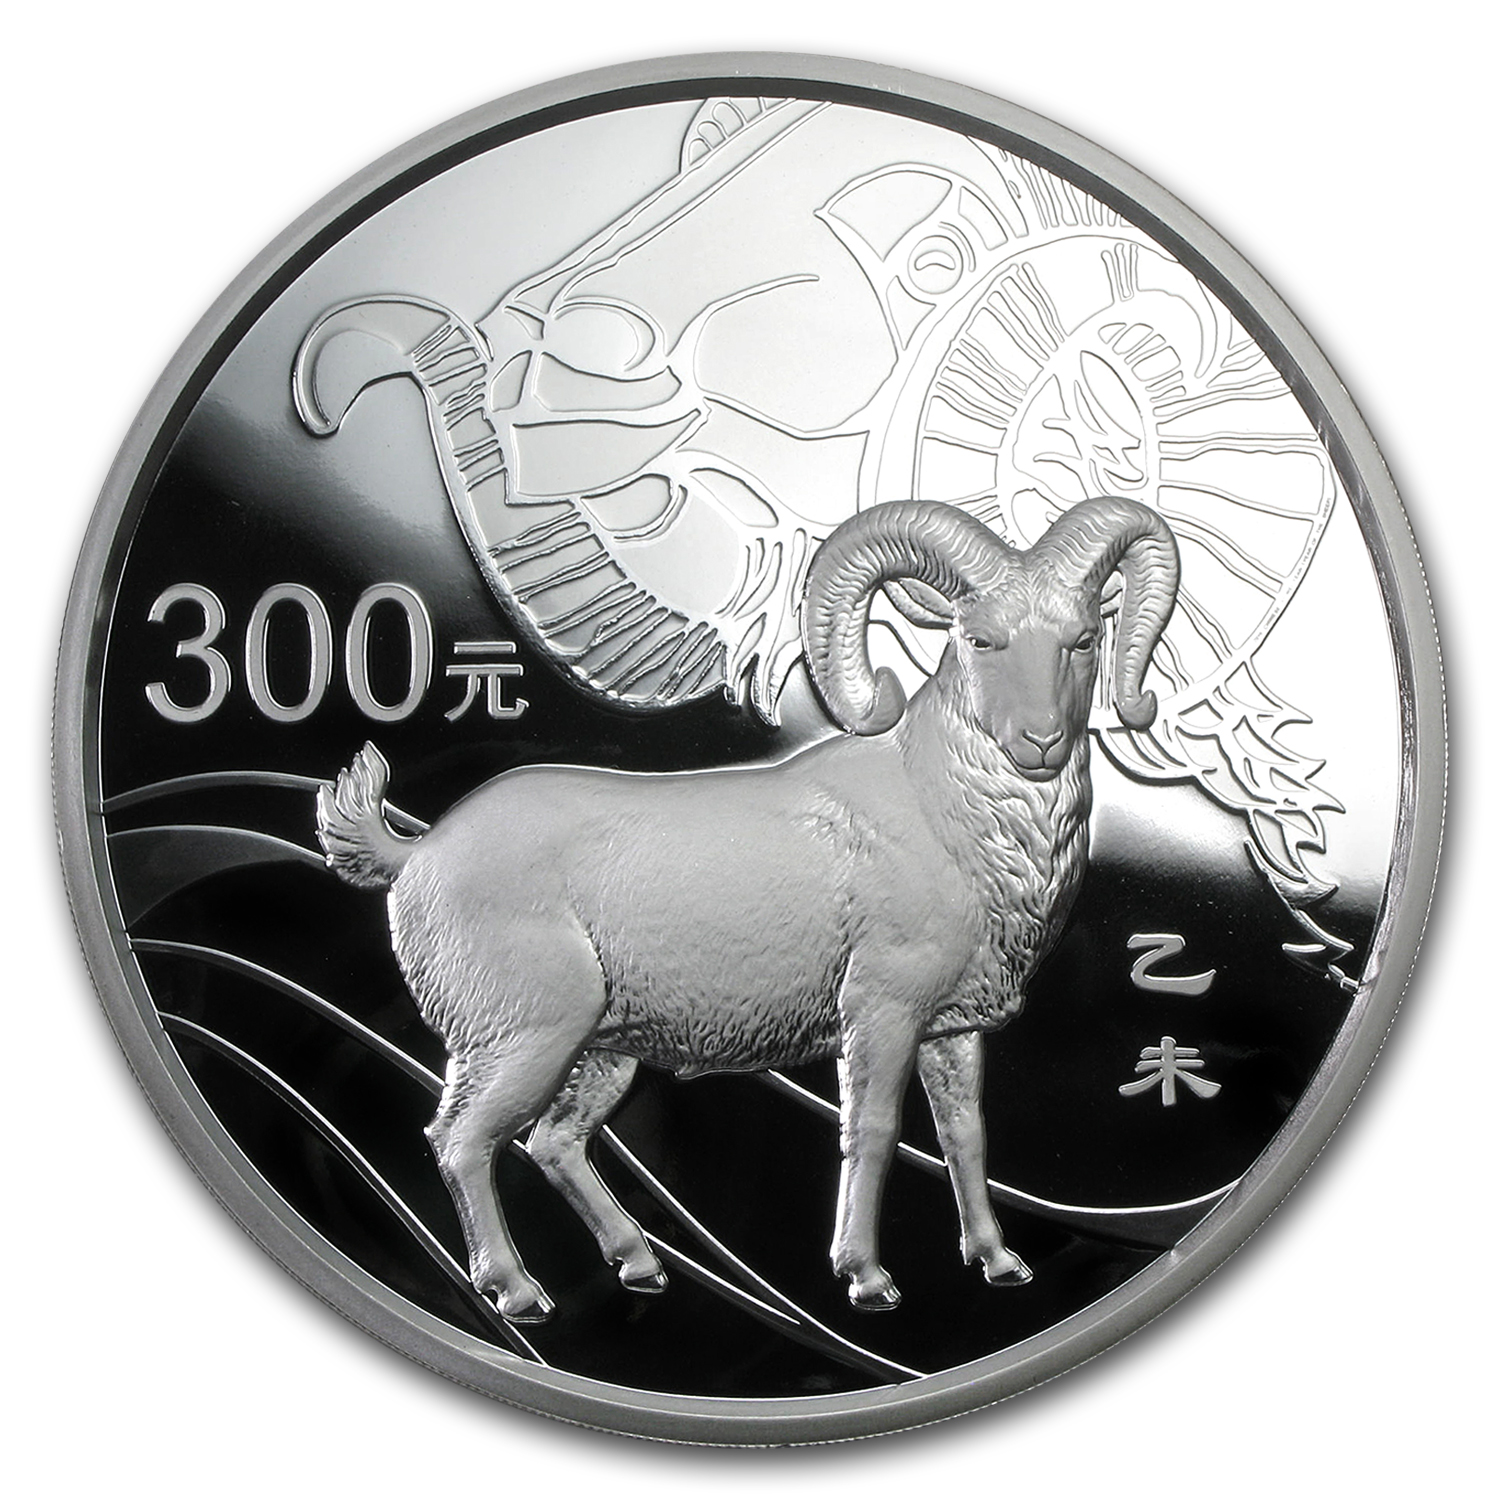 2015 China 1 kilo Silver Year of the Goat Proof